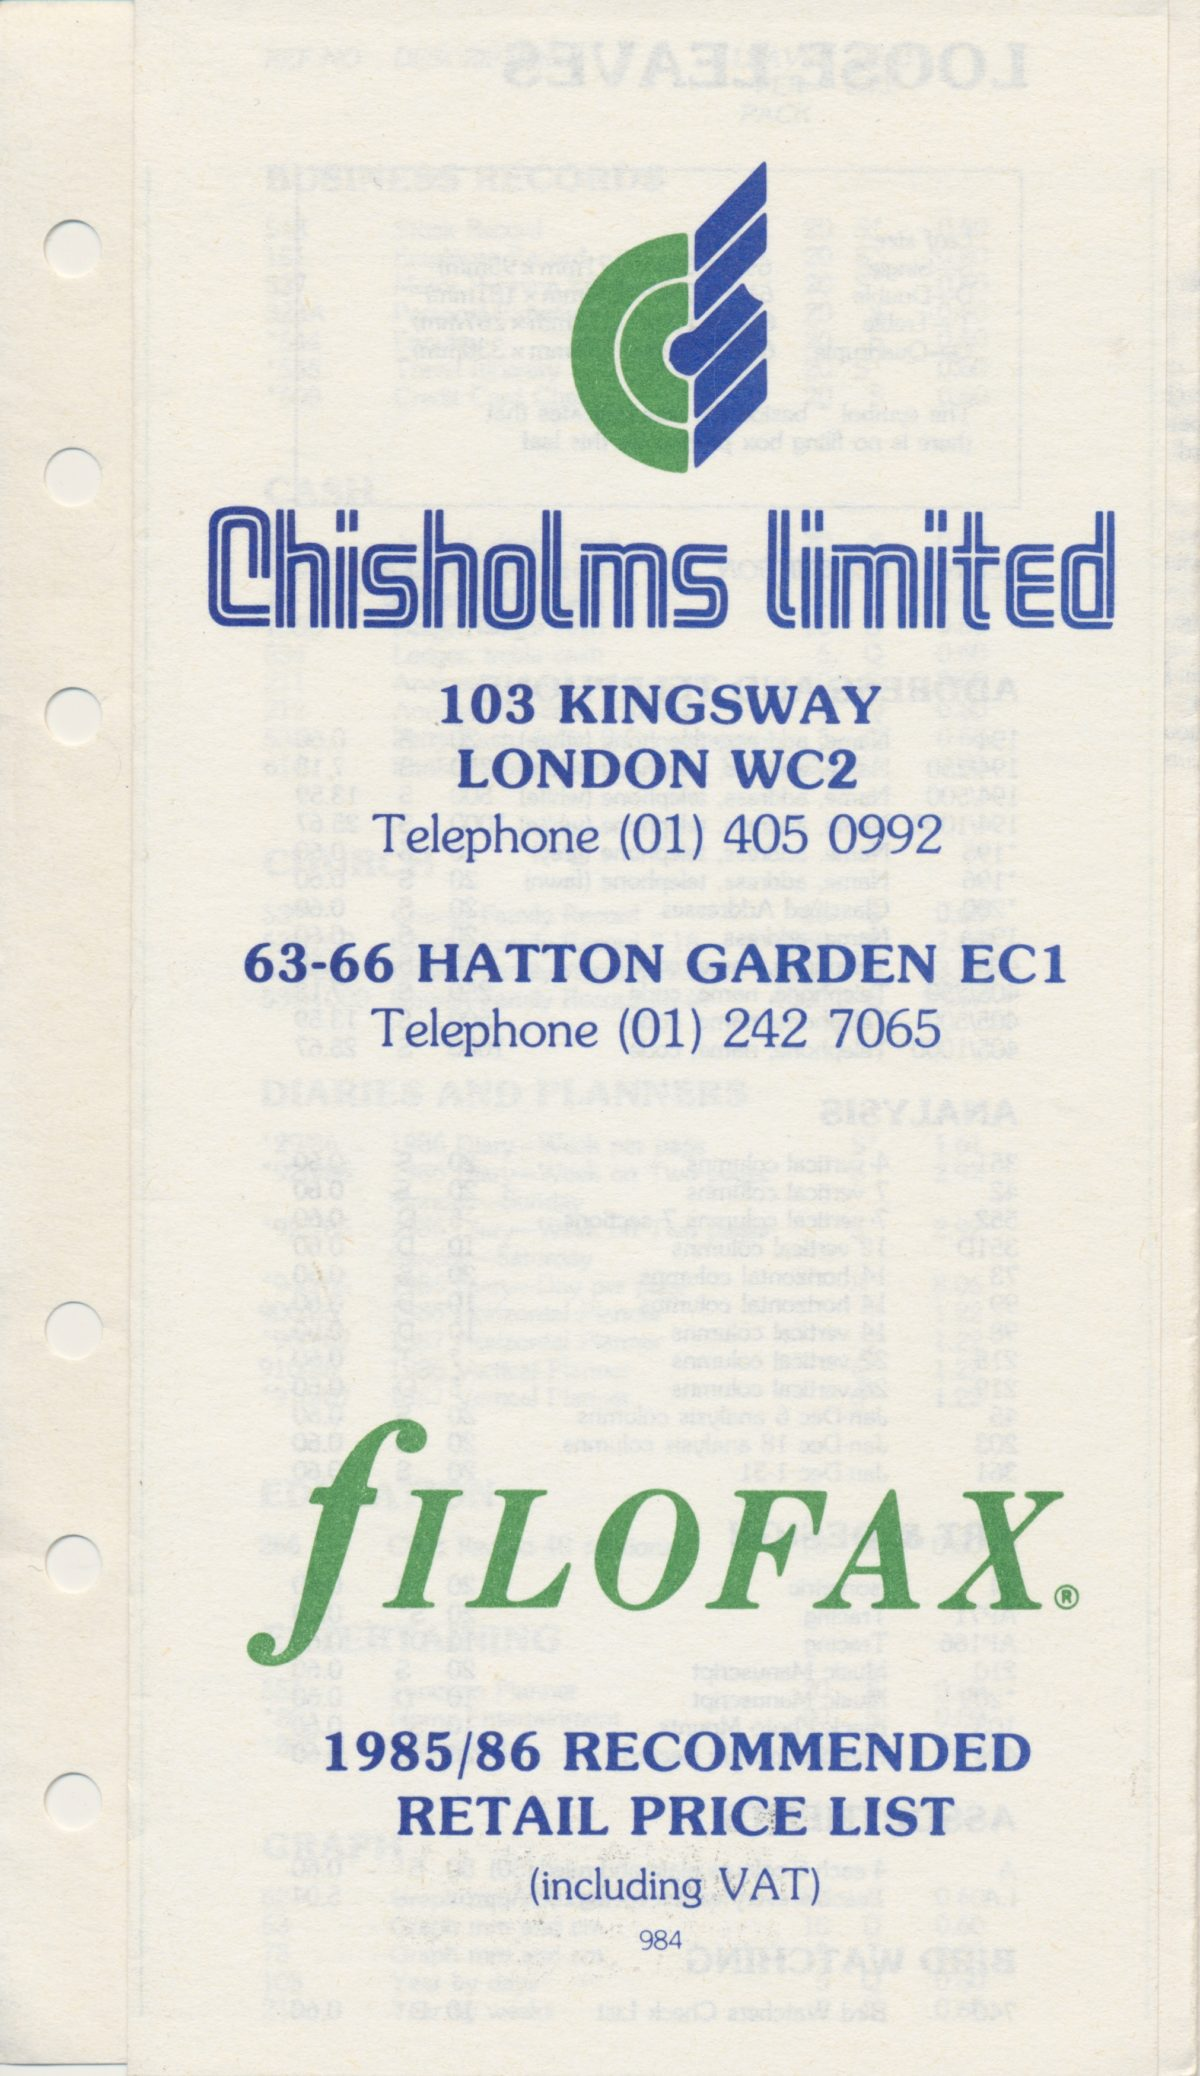 Filofax 1985/86 Price List – Chisholms Limited